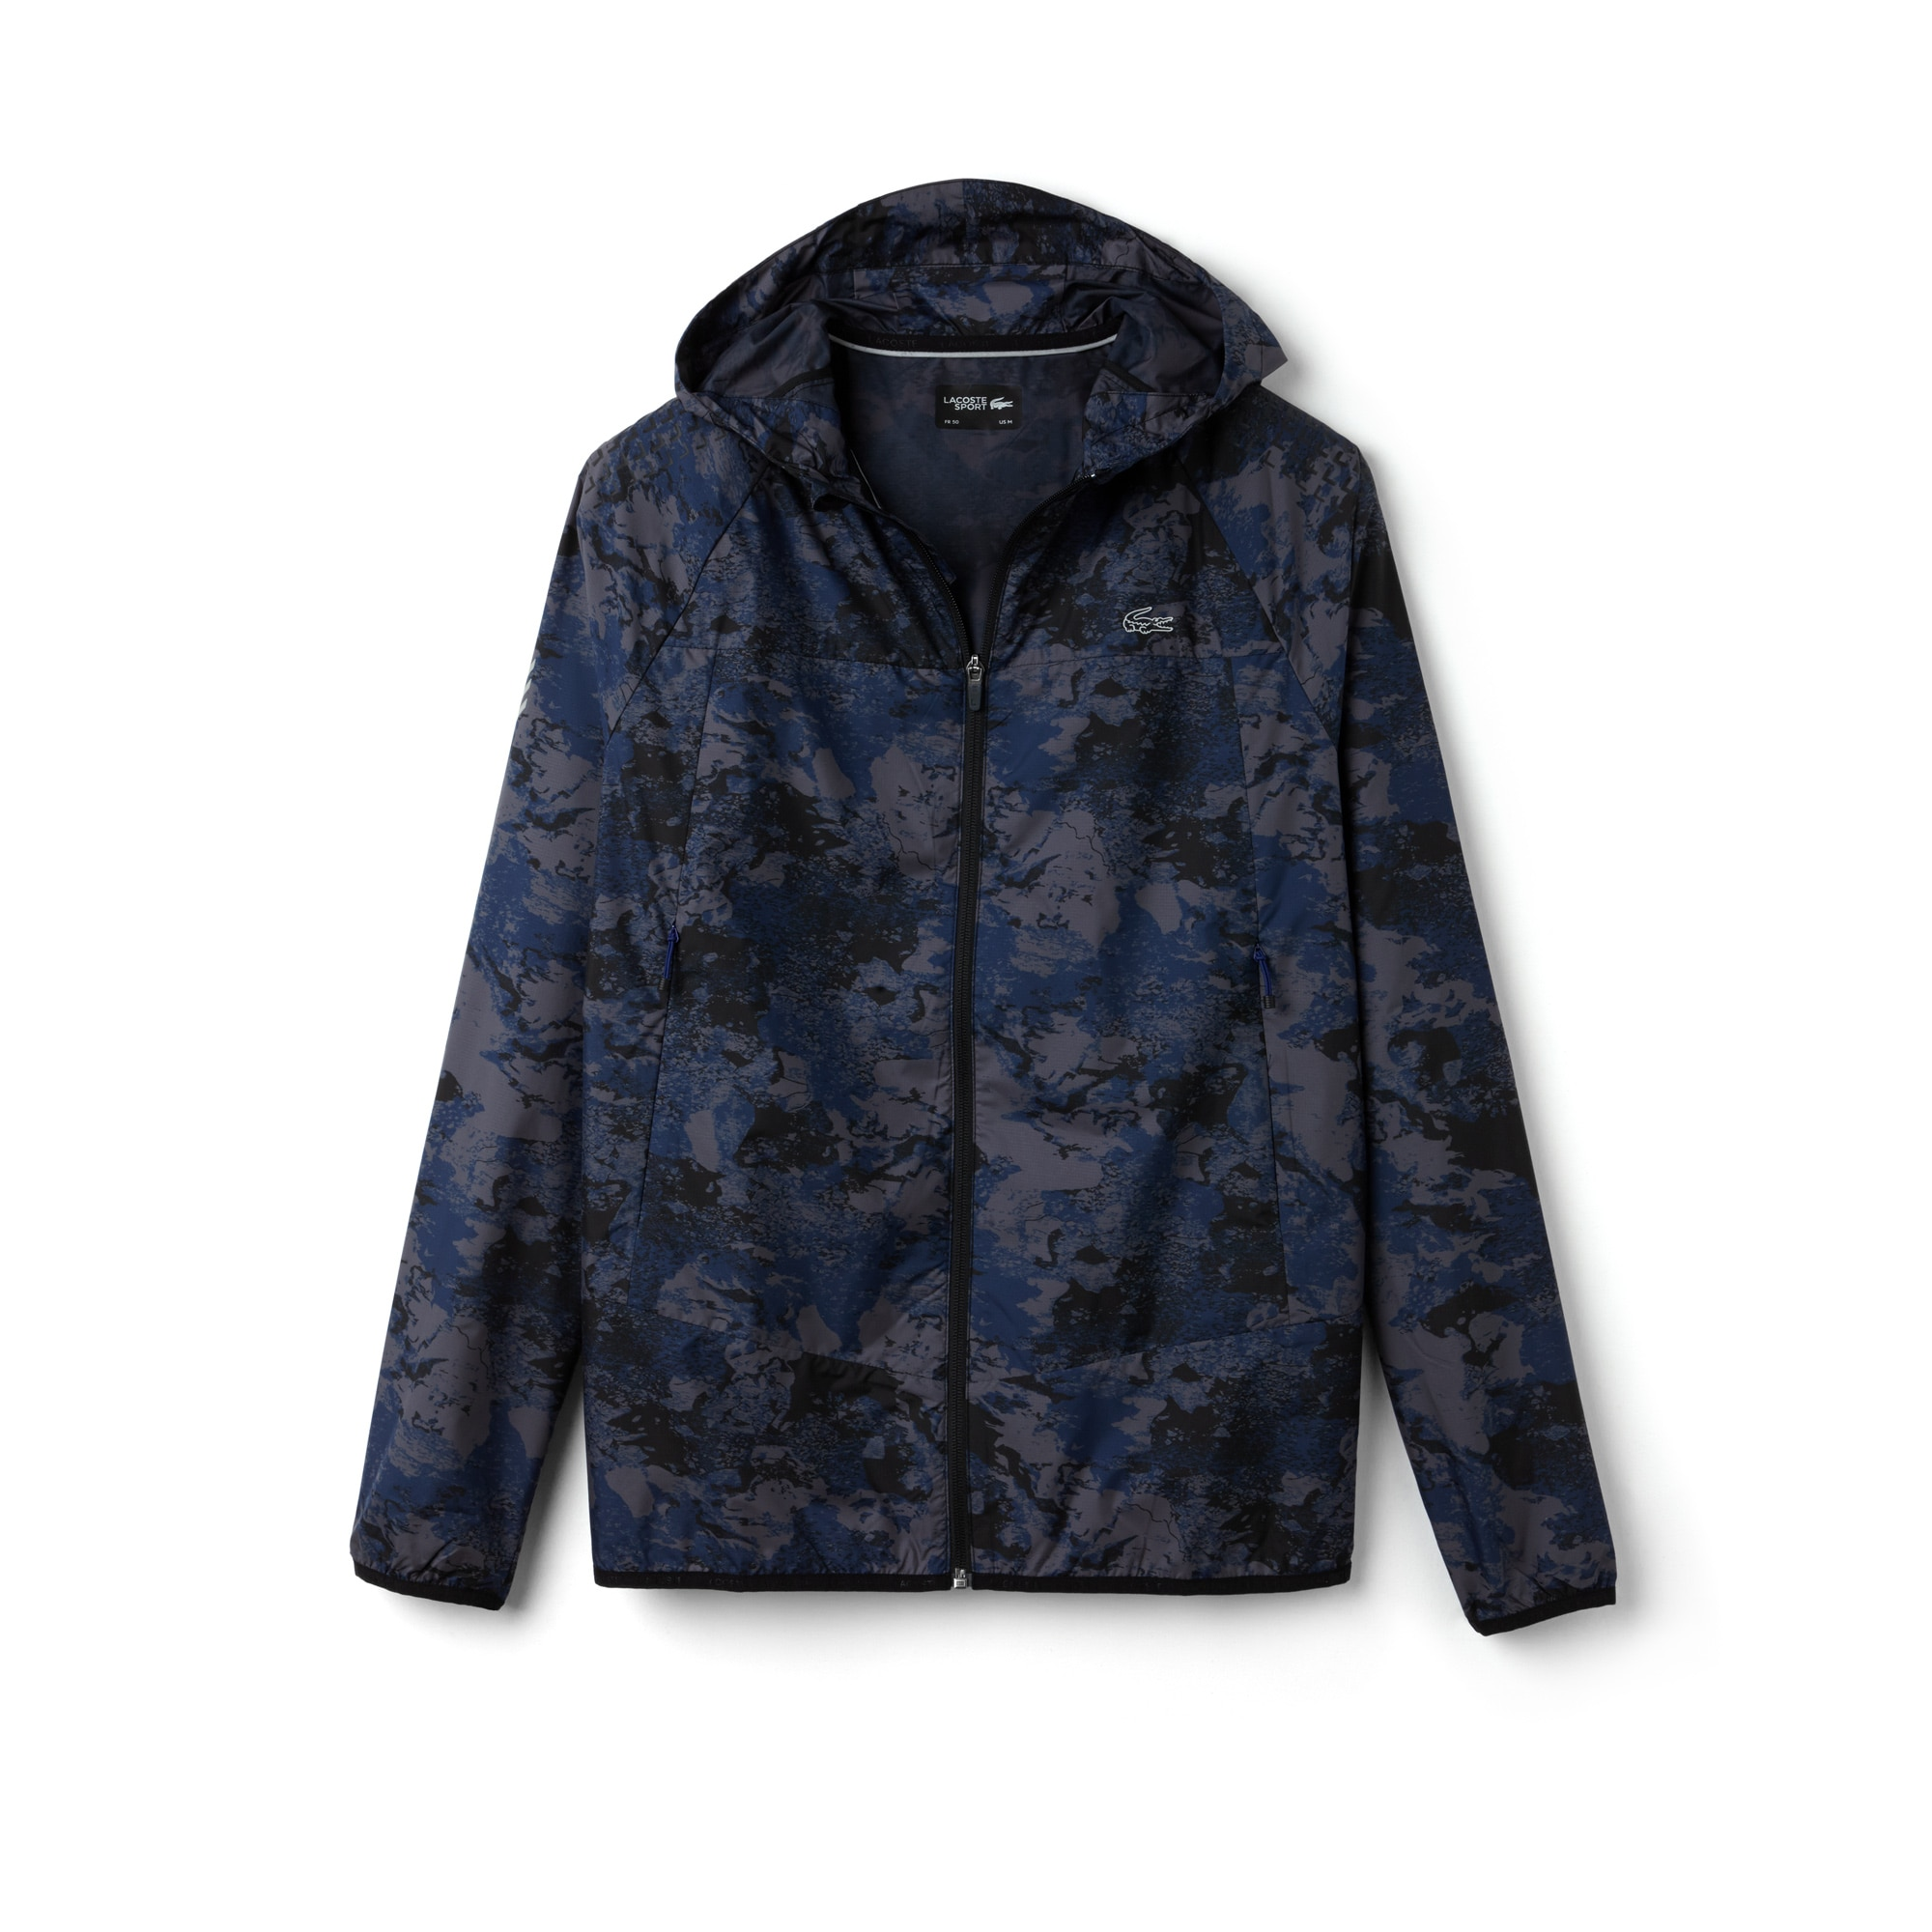 Men's  SPORT Tennis Hooded Graphic Print Jacket